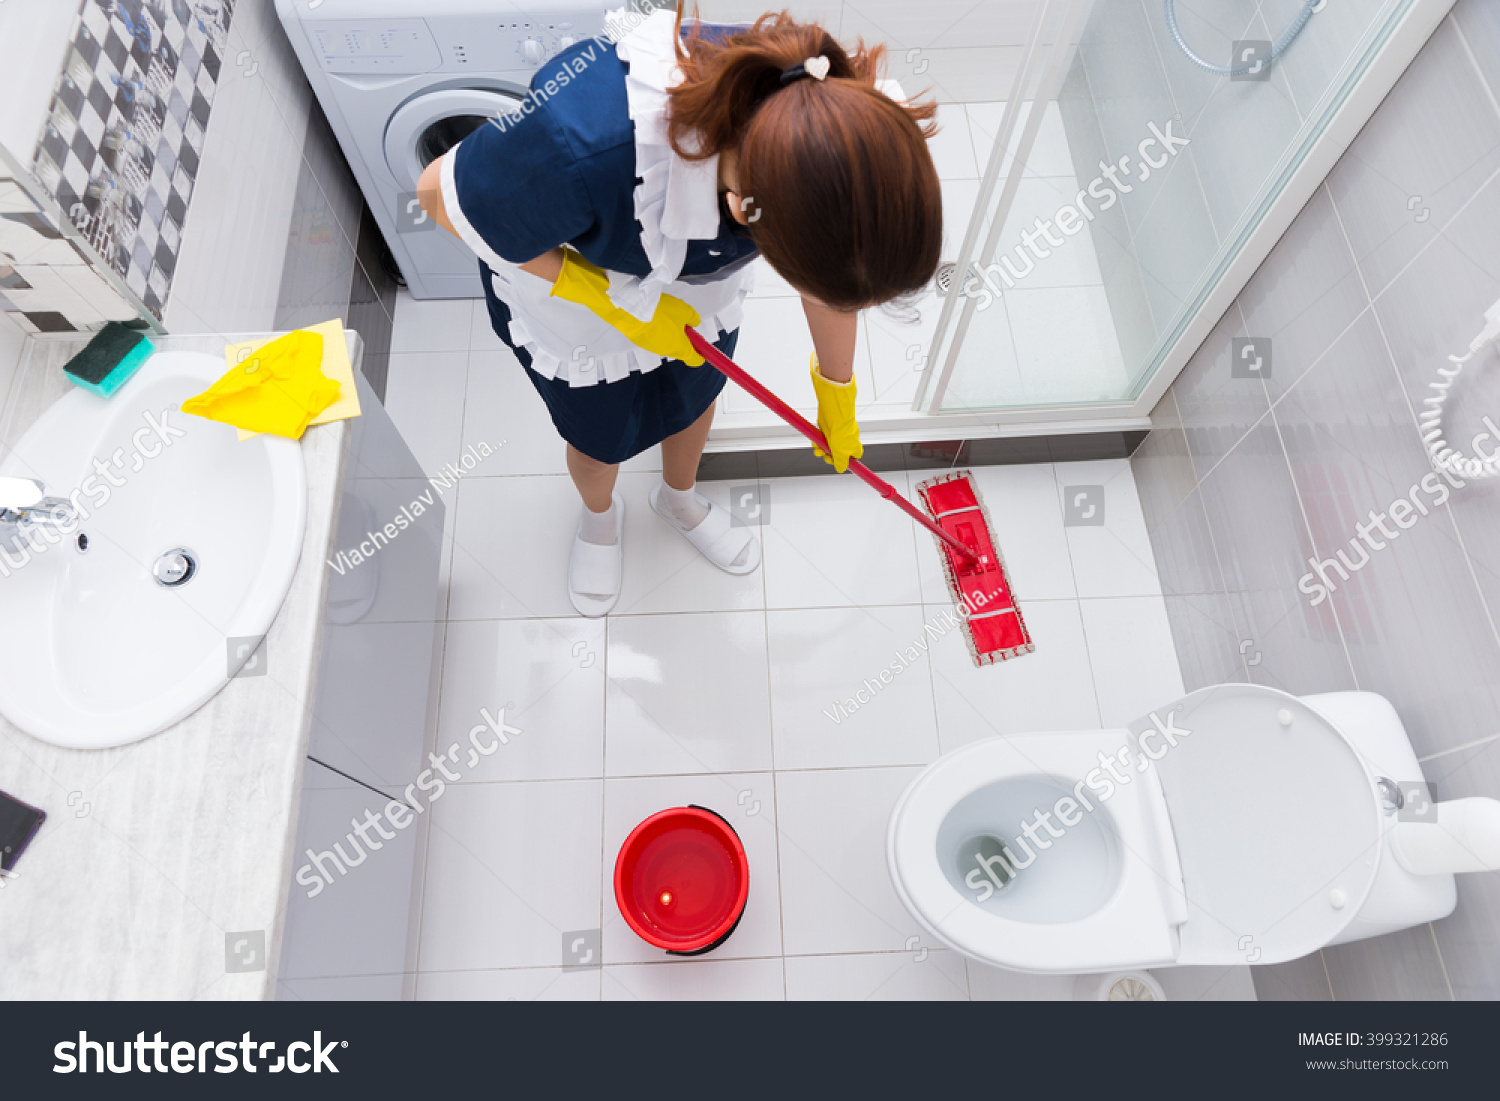 Housekeeper Hotel Mopping Floor Clean White Stock Photo 399321286 Shutterstock